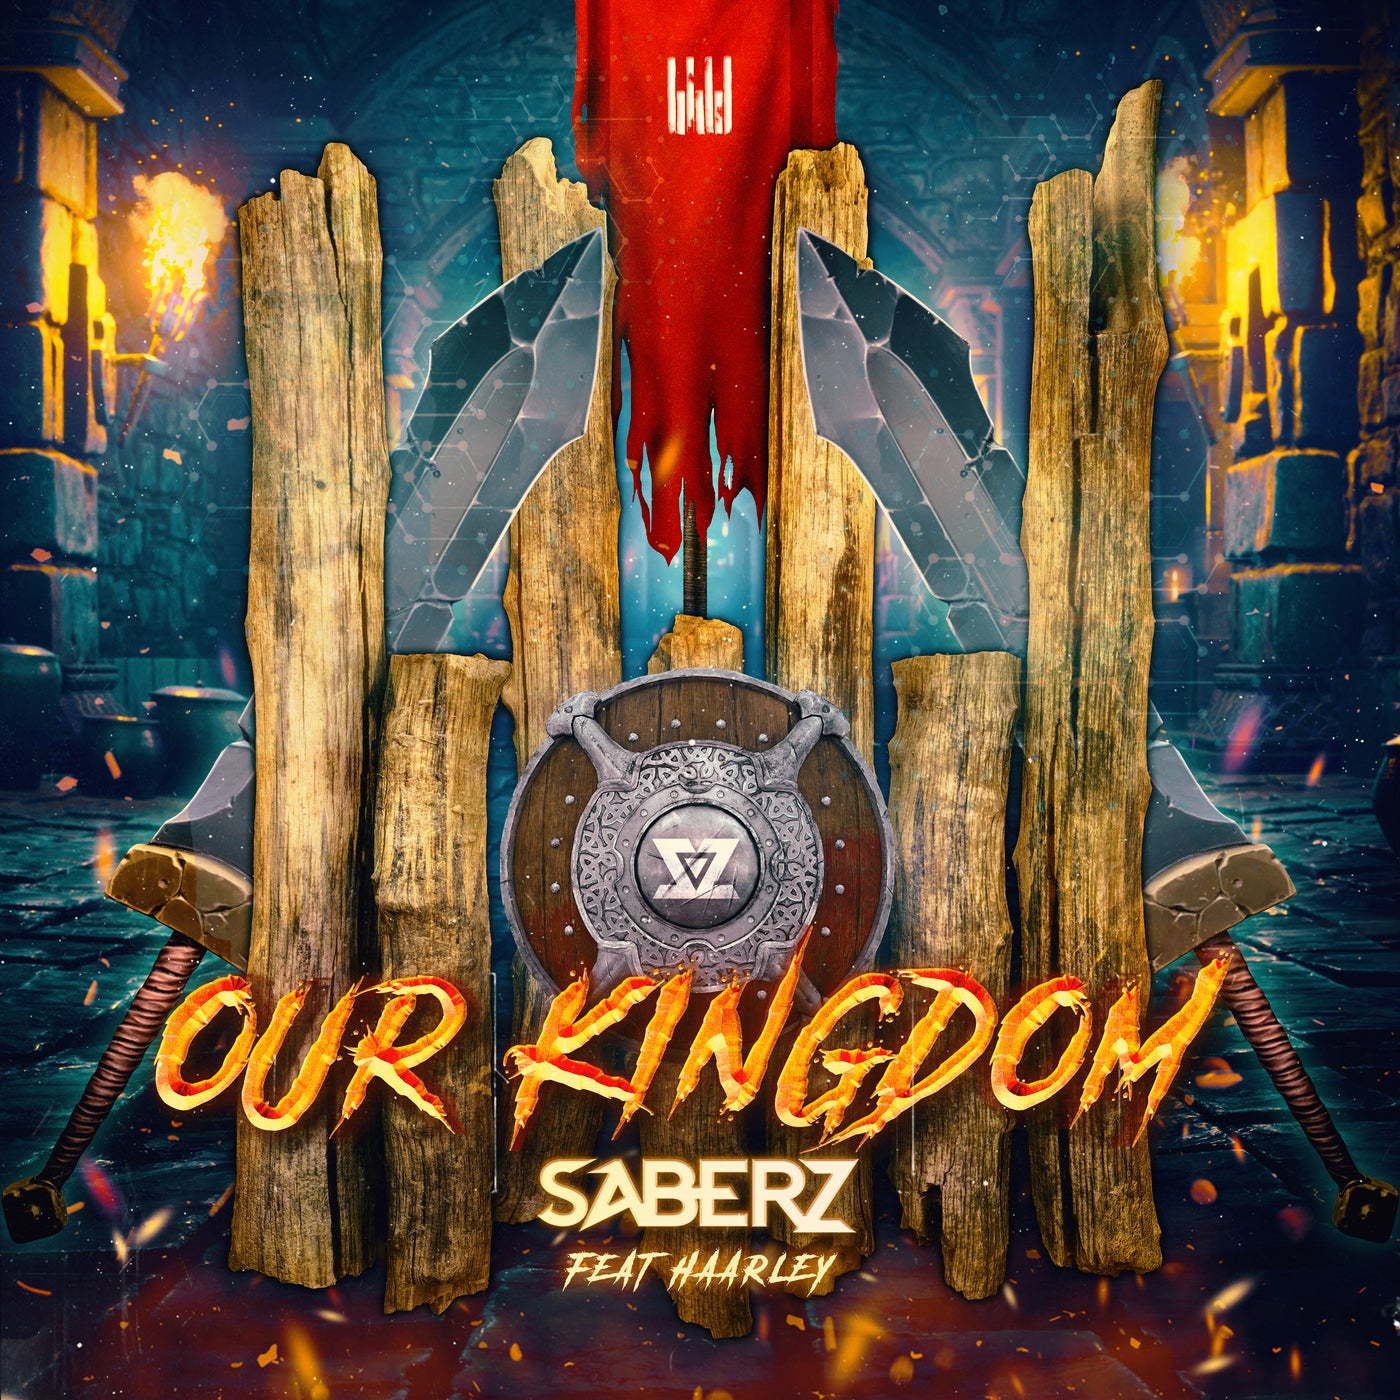 Our Kingdom feat. Haarley feat. Haarley (Extended Mix)